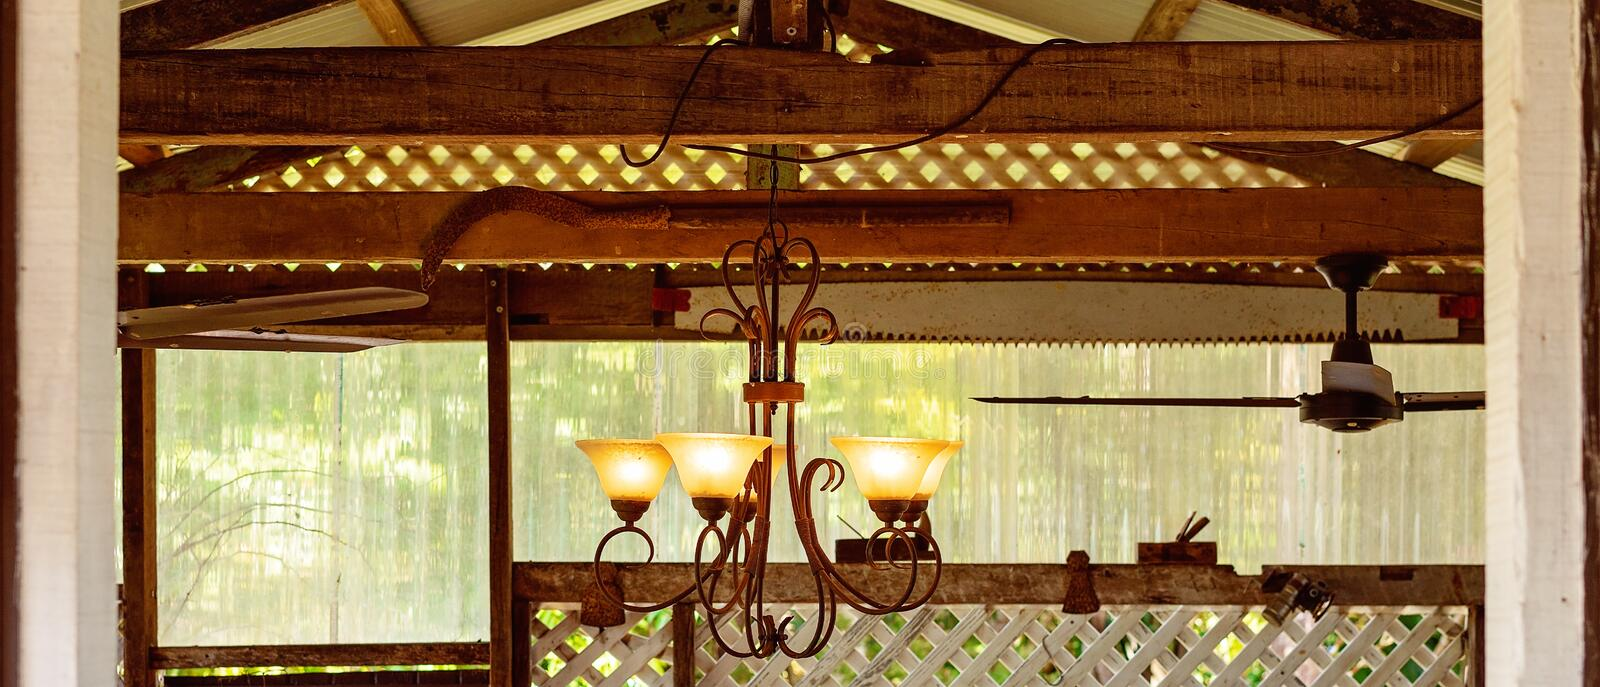 A Retro Chandelier Glowing Light In A Rustic Country Cafe. A rustic chandelier hanging from old wooden beams amongst farming objects in a country cafe royalty free stock photos